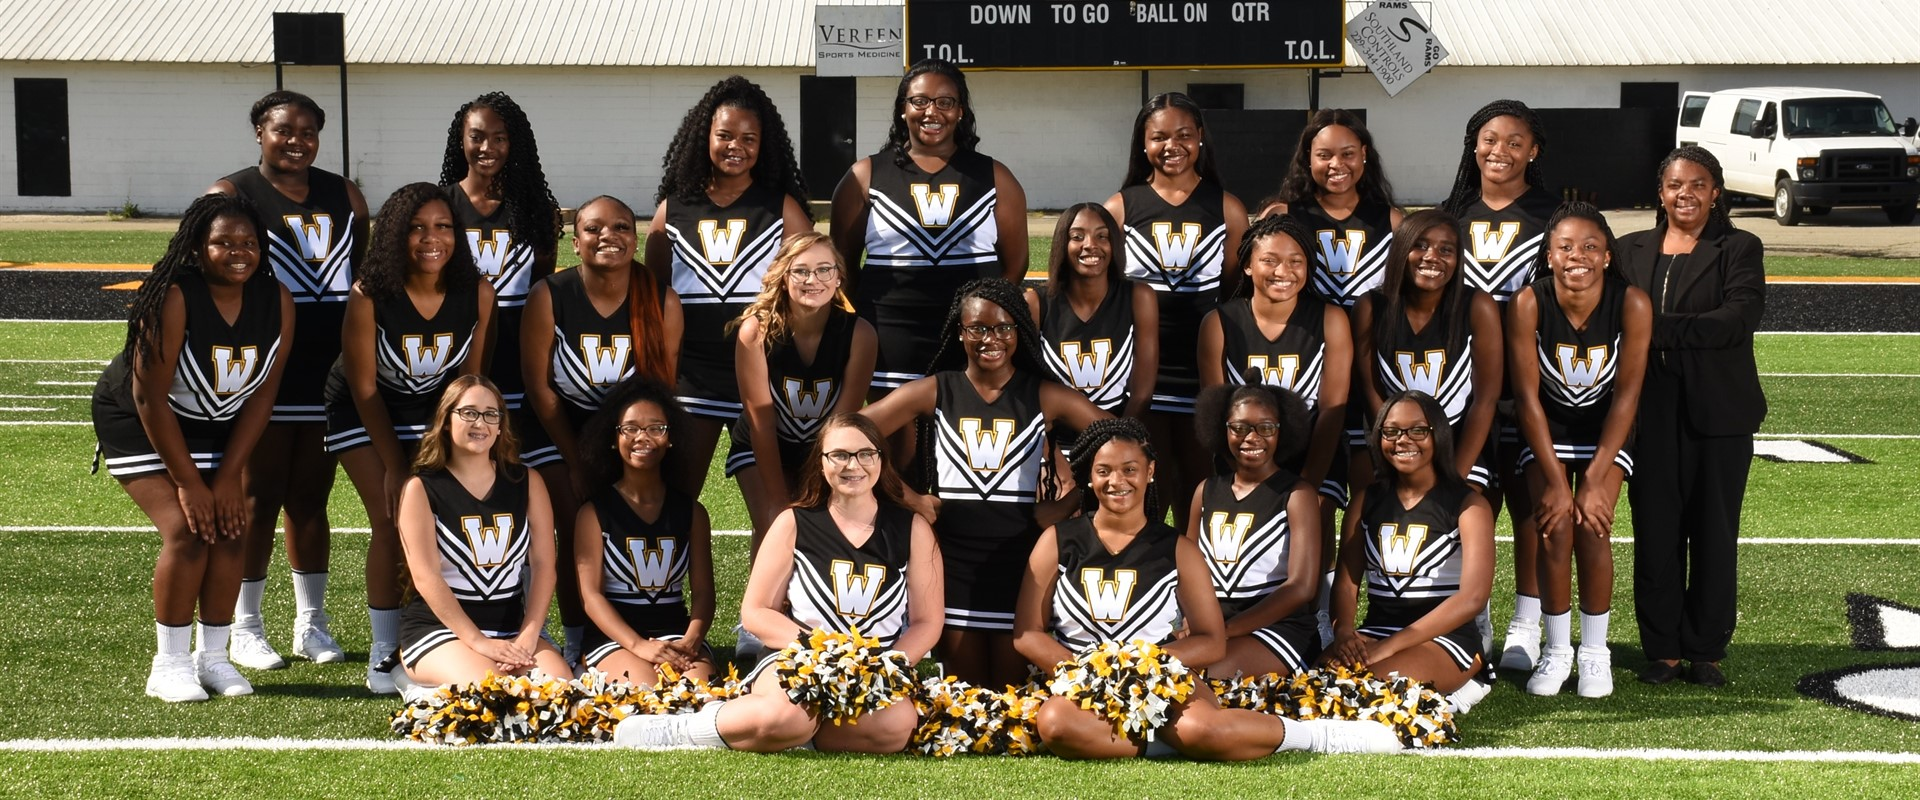 2019-20 Spirit Cheerleaders